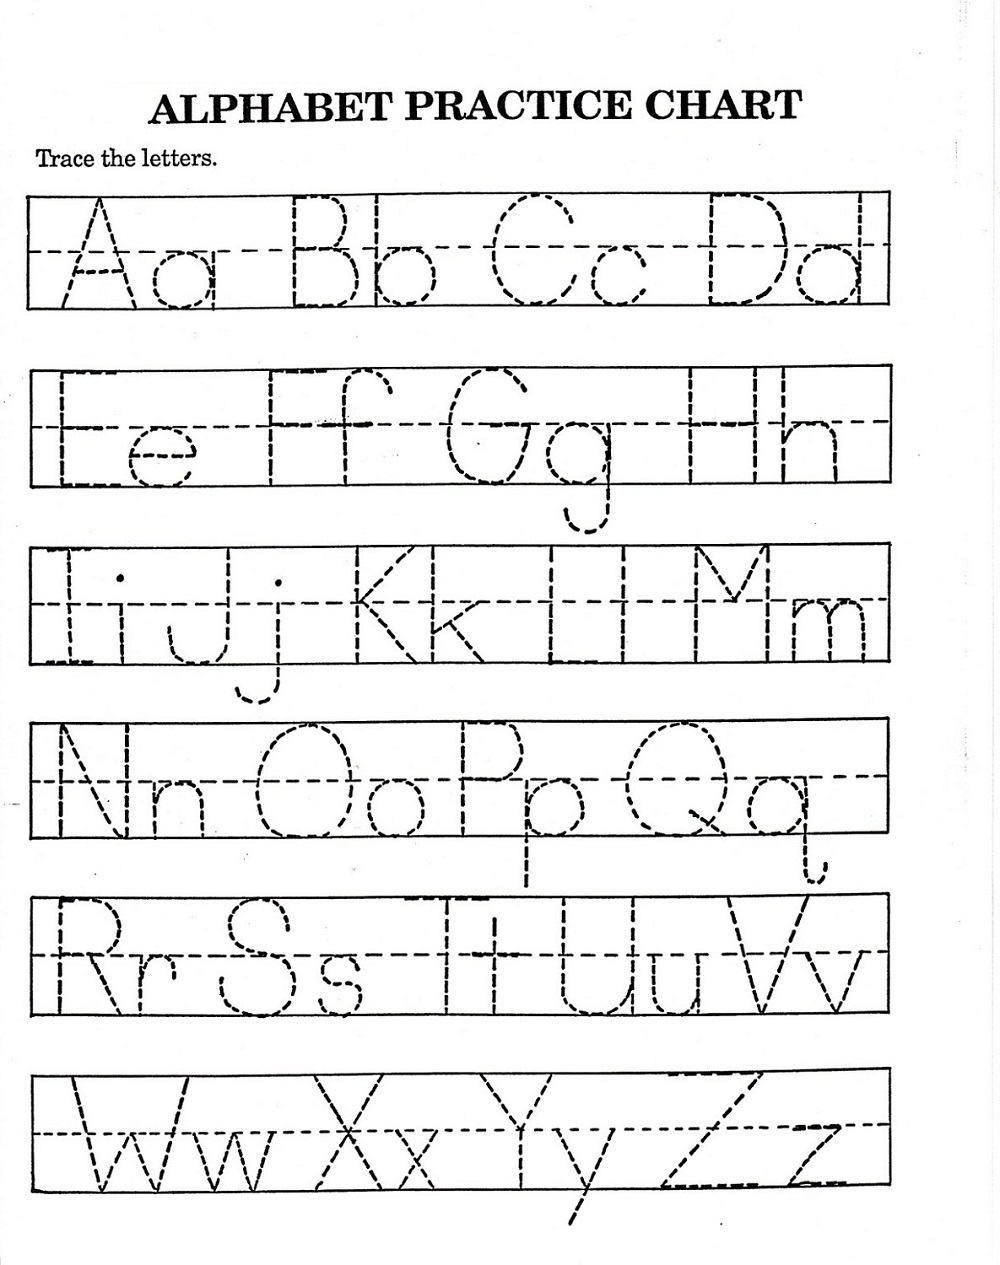 Alphabet Tracing For Kids A-Z | Activity Shelter throughout Alphabet Tracing Chart Printable